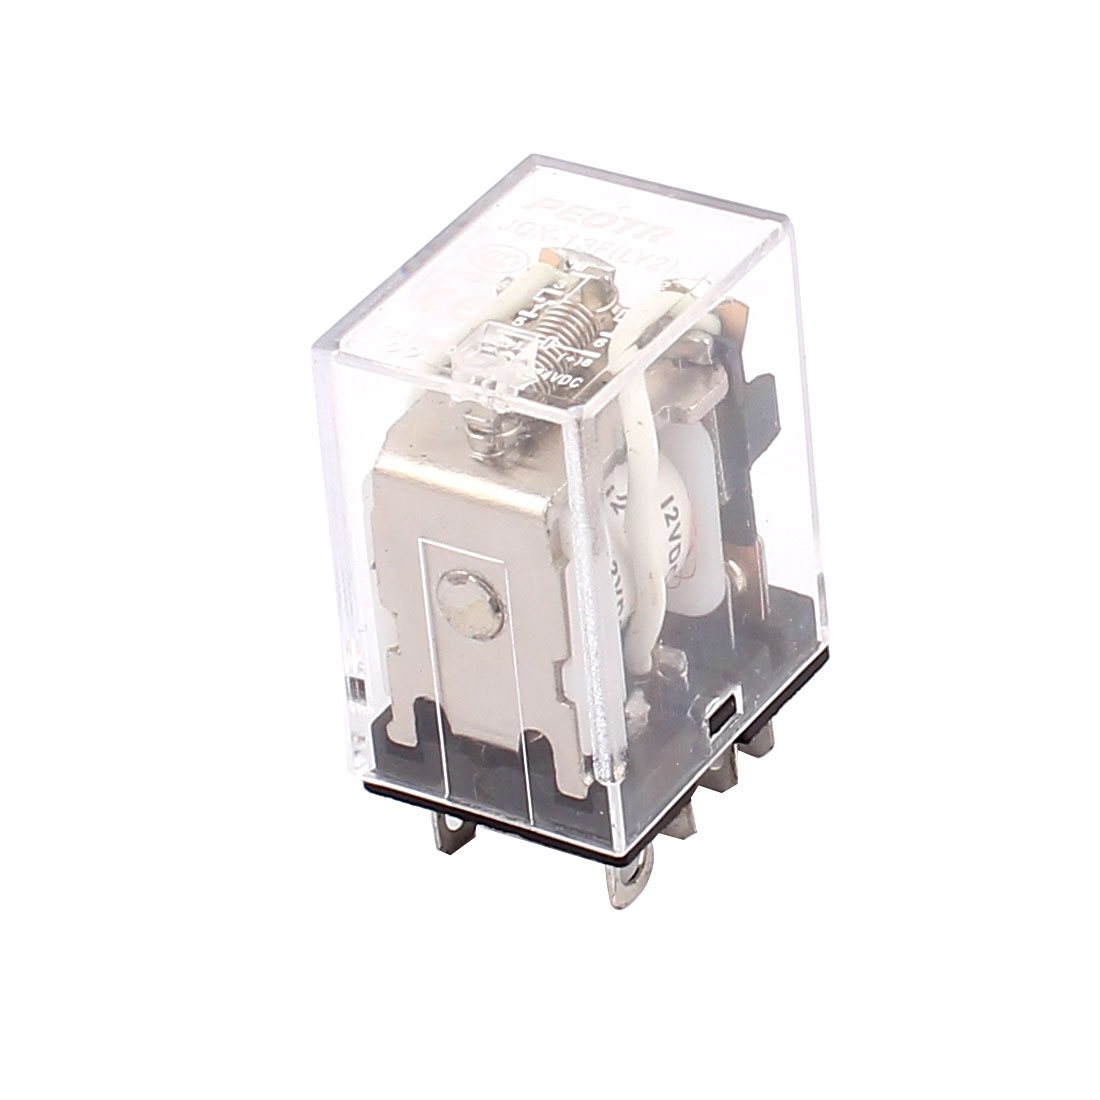 JQX-13F DC 12V Coil 8-Pin DPDT Power Relay AC 220V 7.5A DC 24V 10A